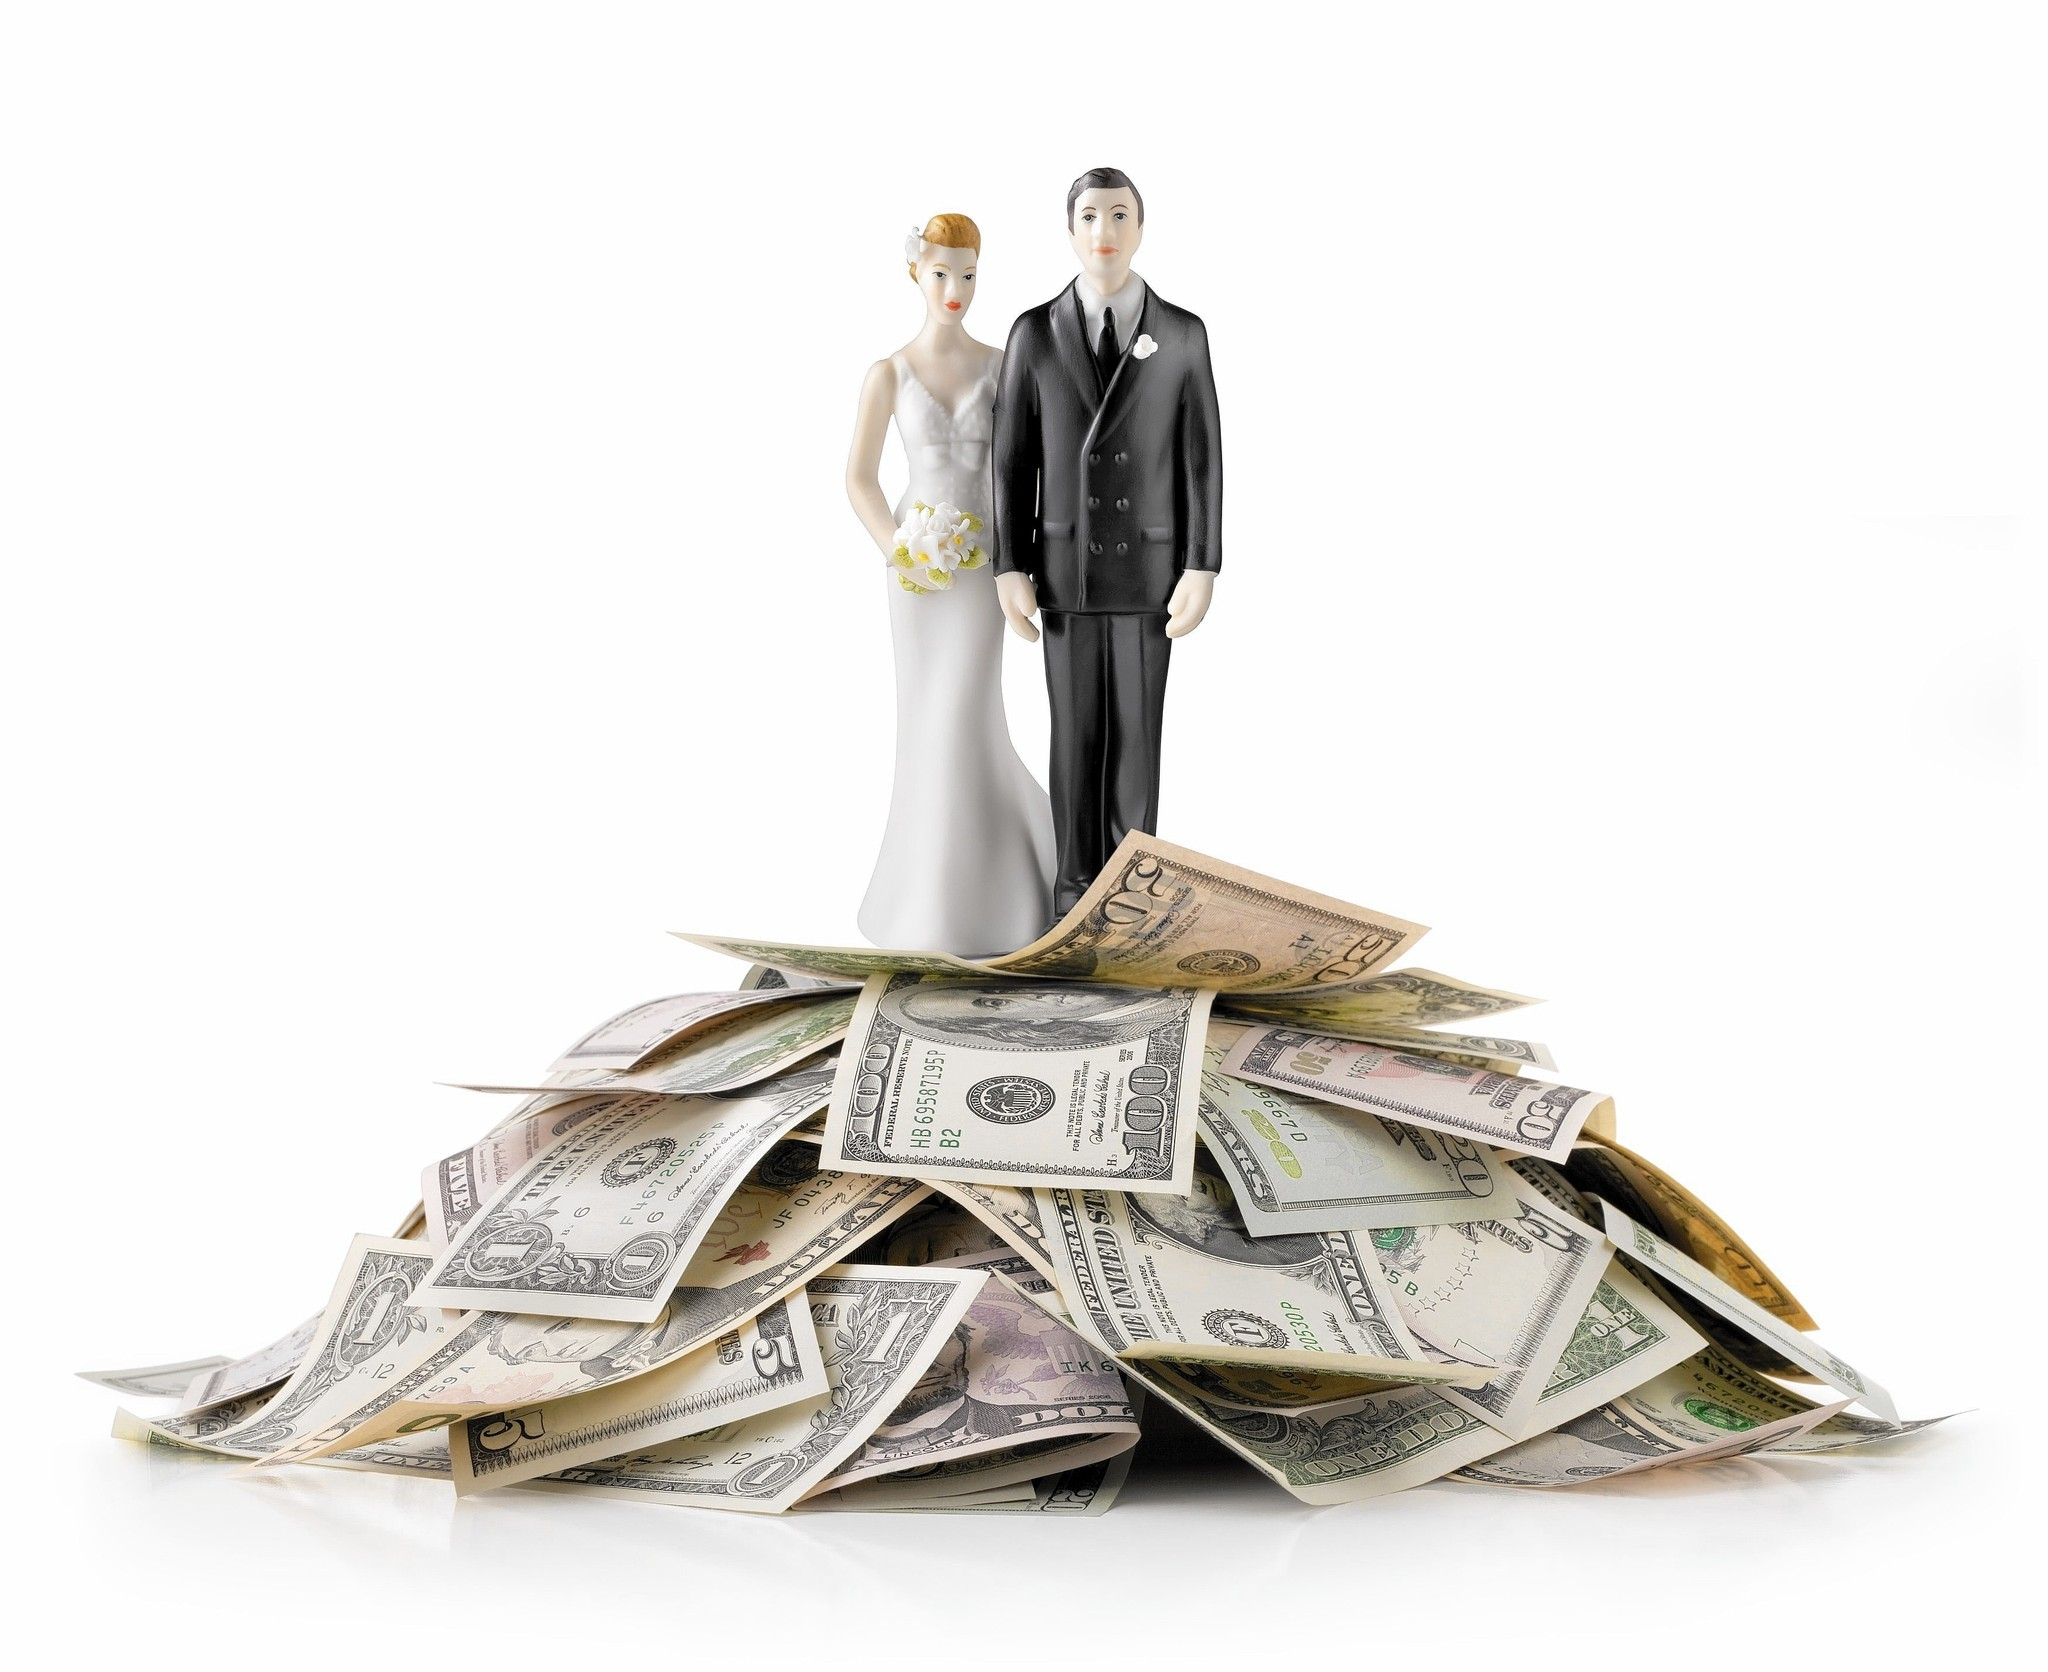 How Much Money Gift Wedding: Where Do Cash Gifts Go After The Wedding?